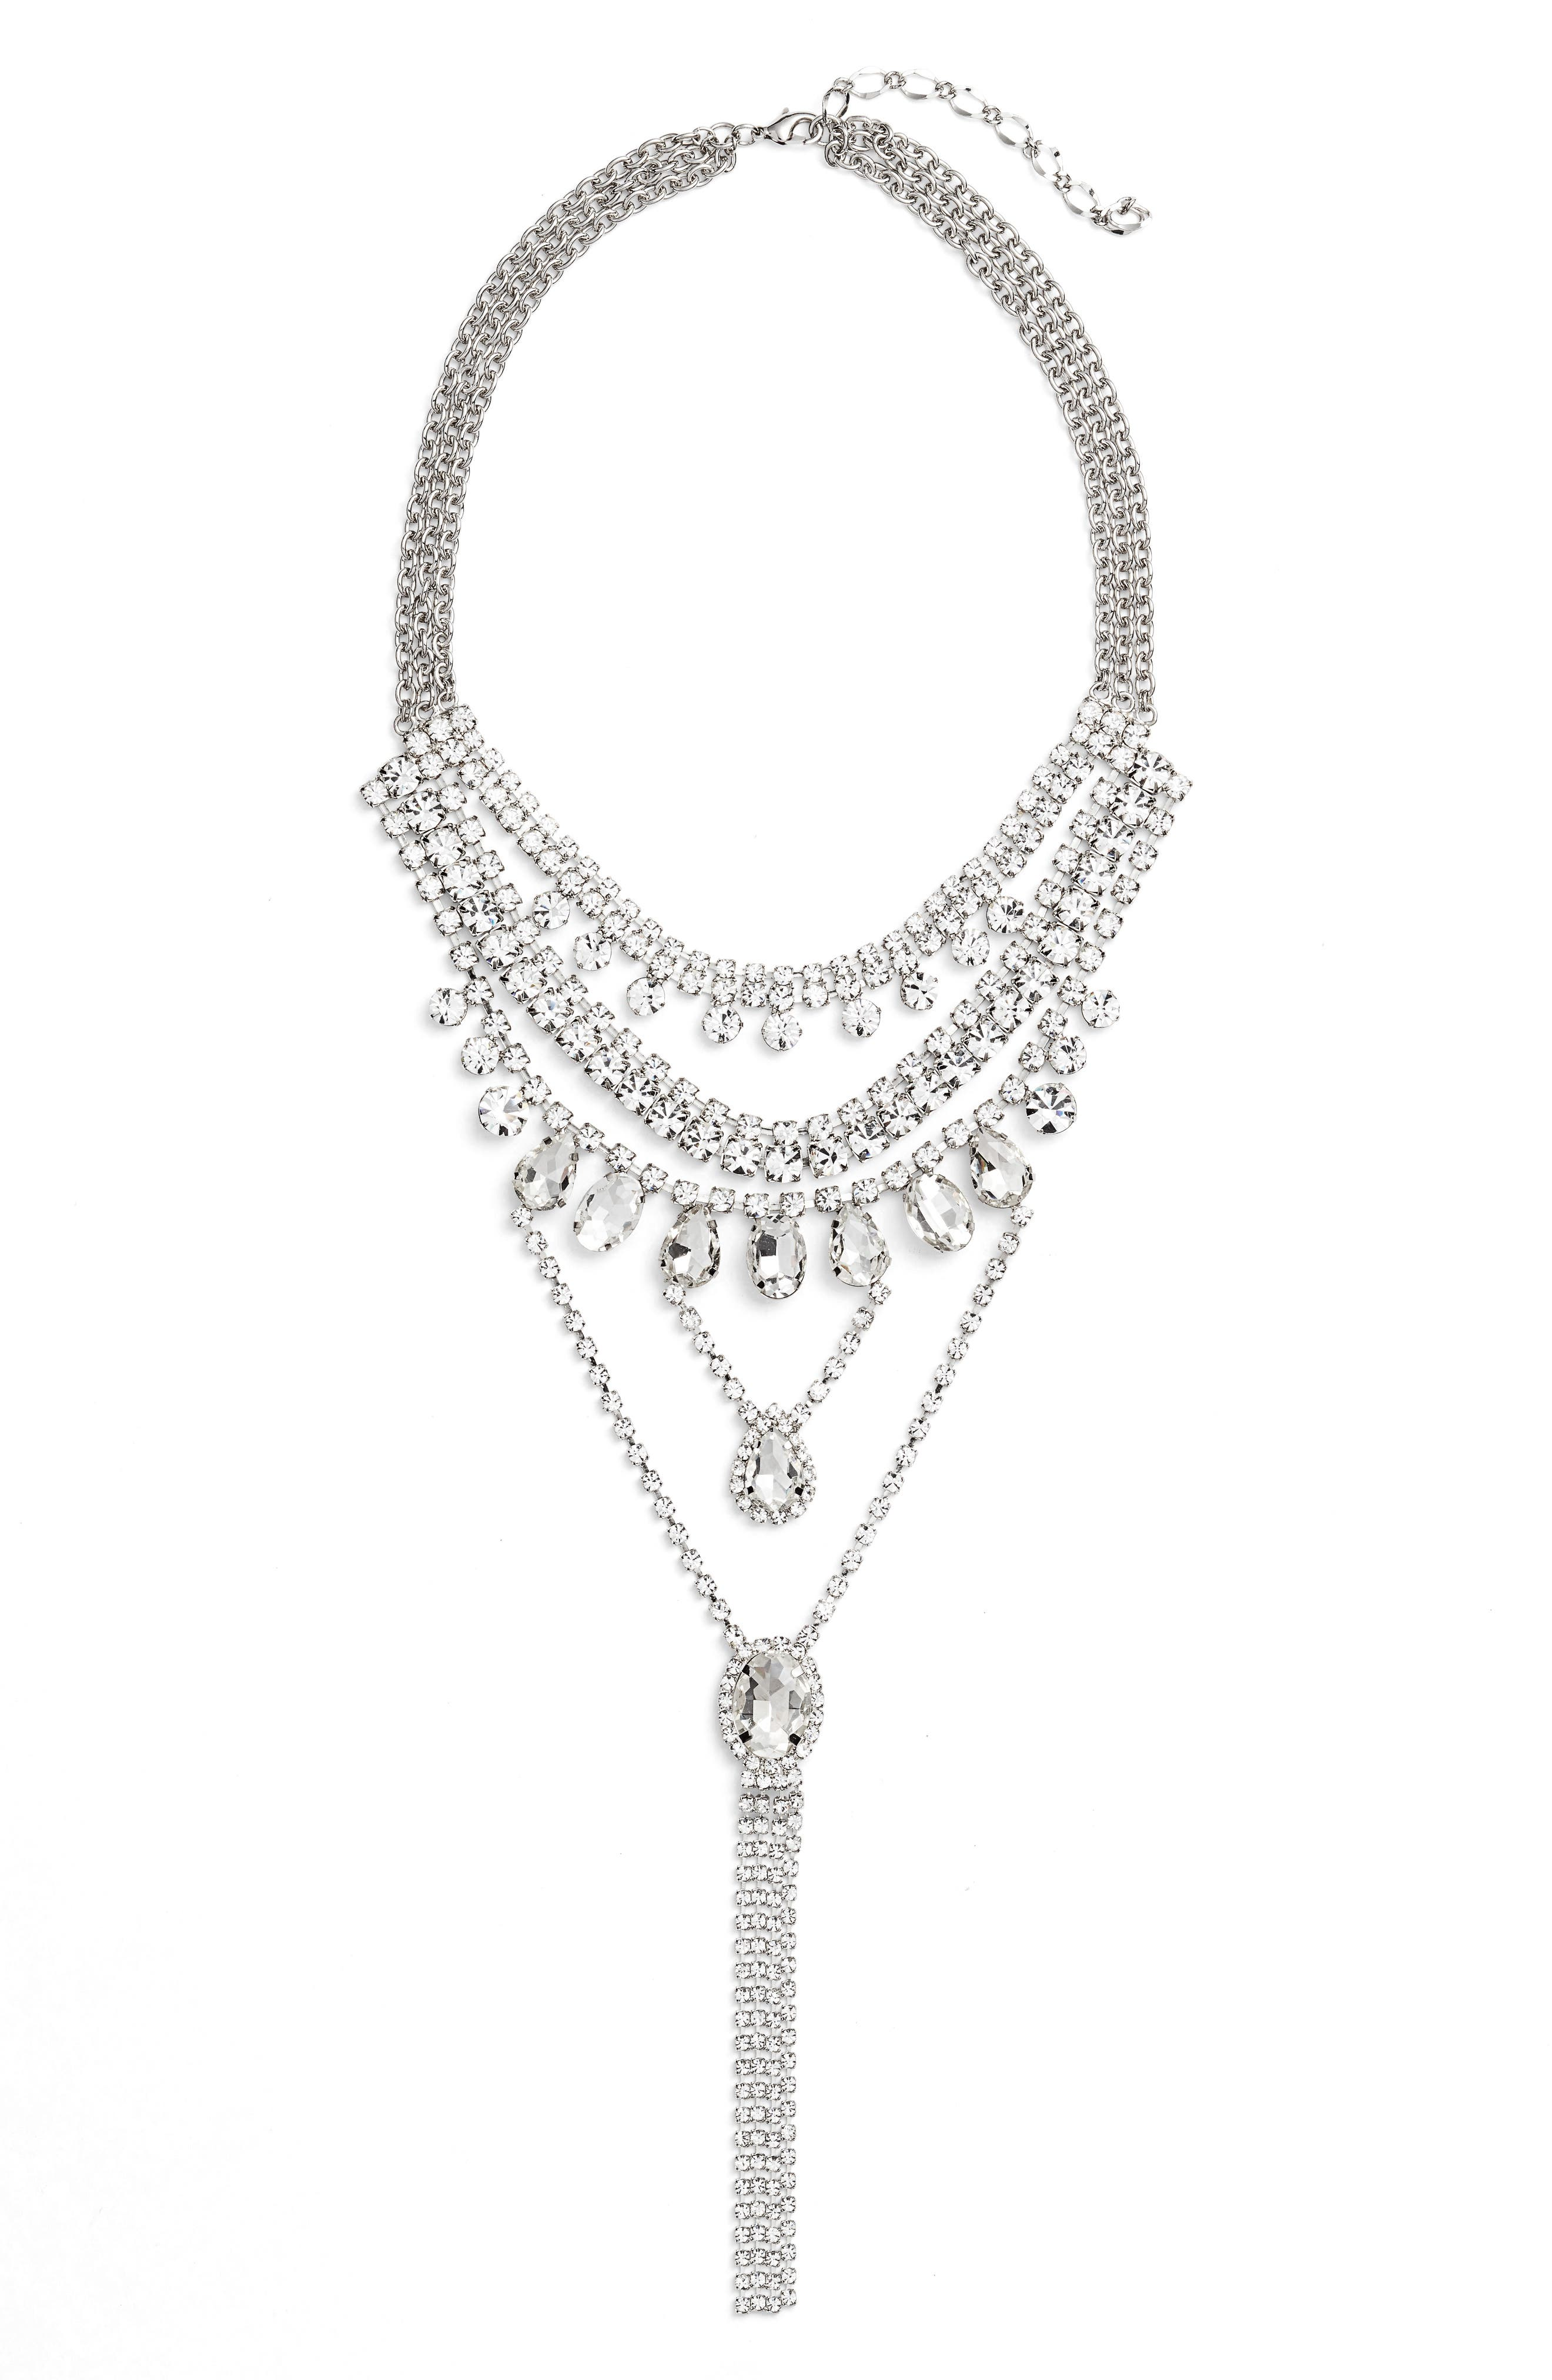 Multistrand Crystal Necklace,                         Main,                         color, SILVER